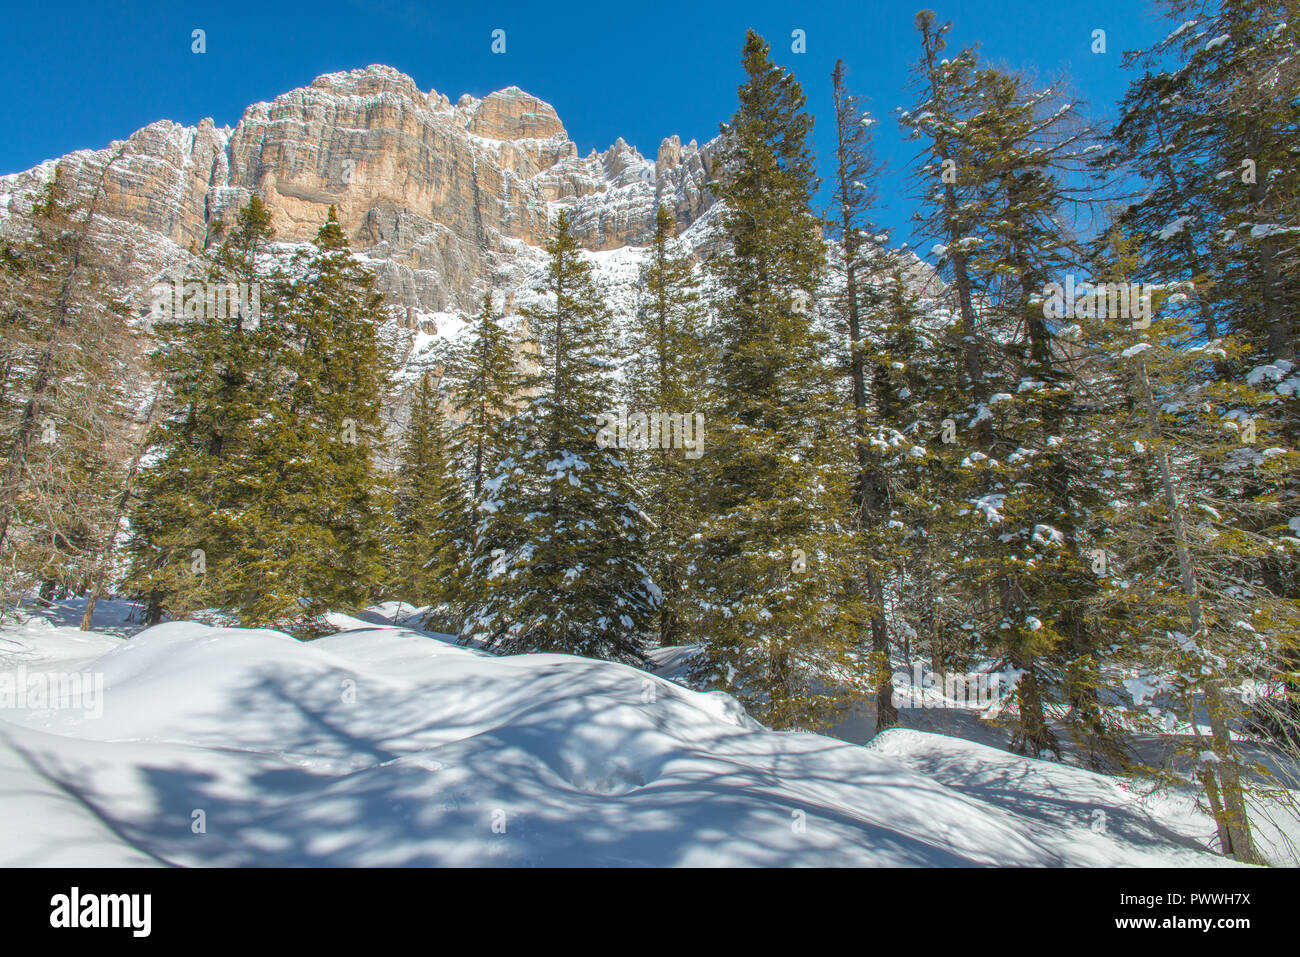 Moiazza mountain south face exposed to the sun in a cloudless winter day. Lots of fresh snow on the ground, great snowshoeing in the forest. - Stock Image